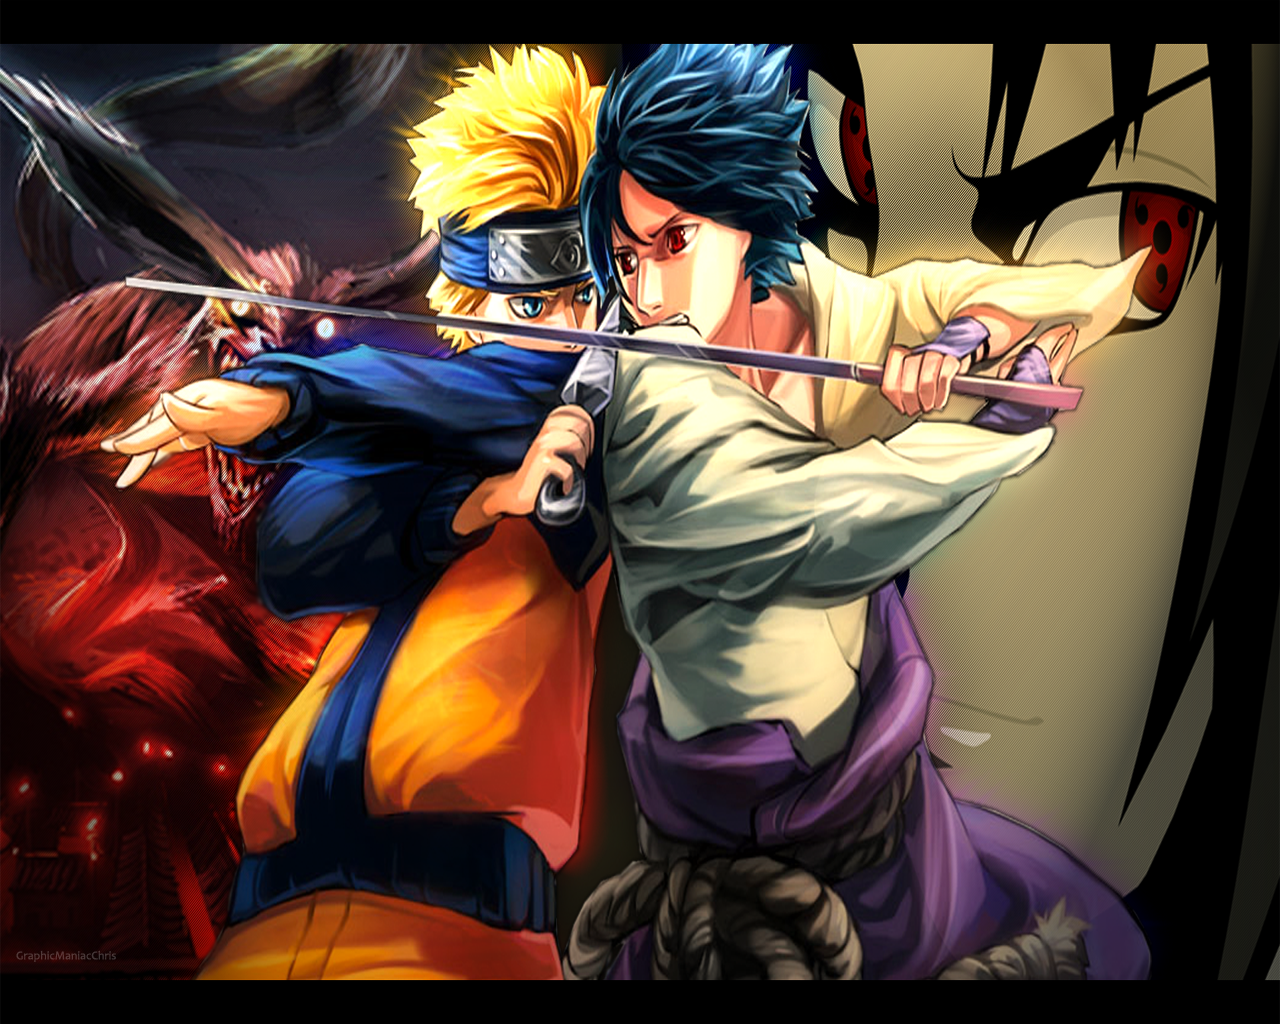 Simple Wallpaper Naruto Good - best_friends___naruto_v_sasuke_by_graphicmaniacchris  Graphic_535480.png